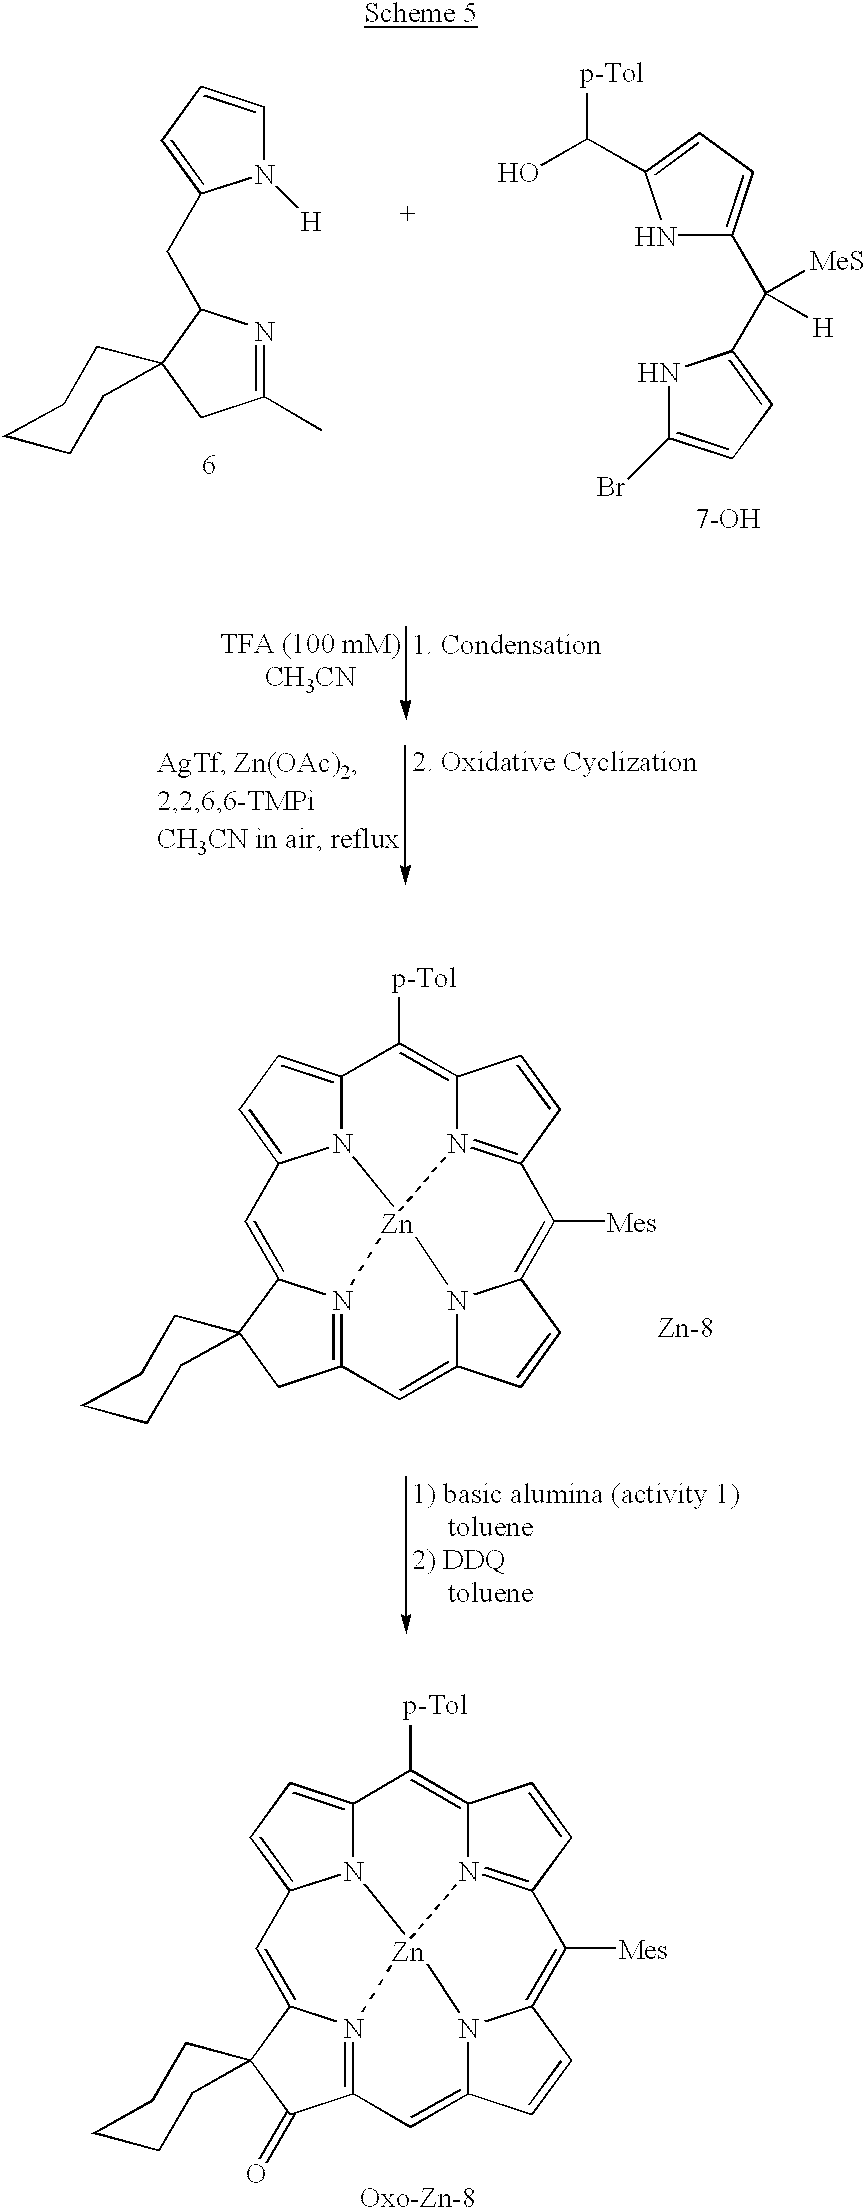 US20020137925A1 - Regioisomerically pure oxochlorins and